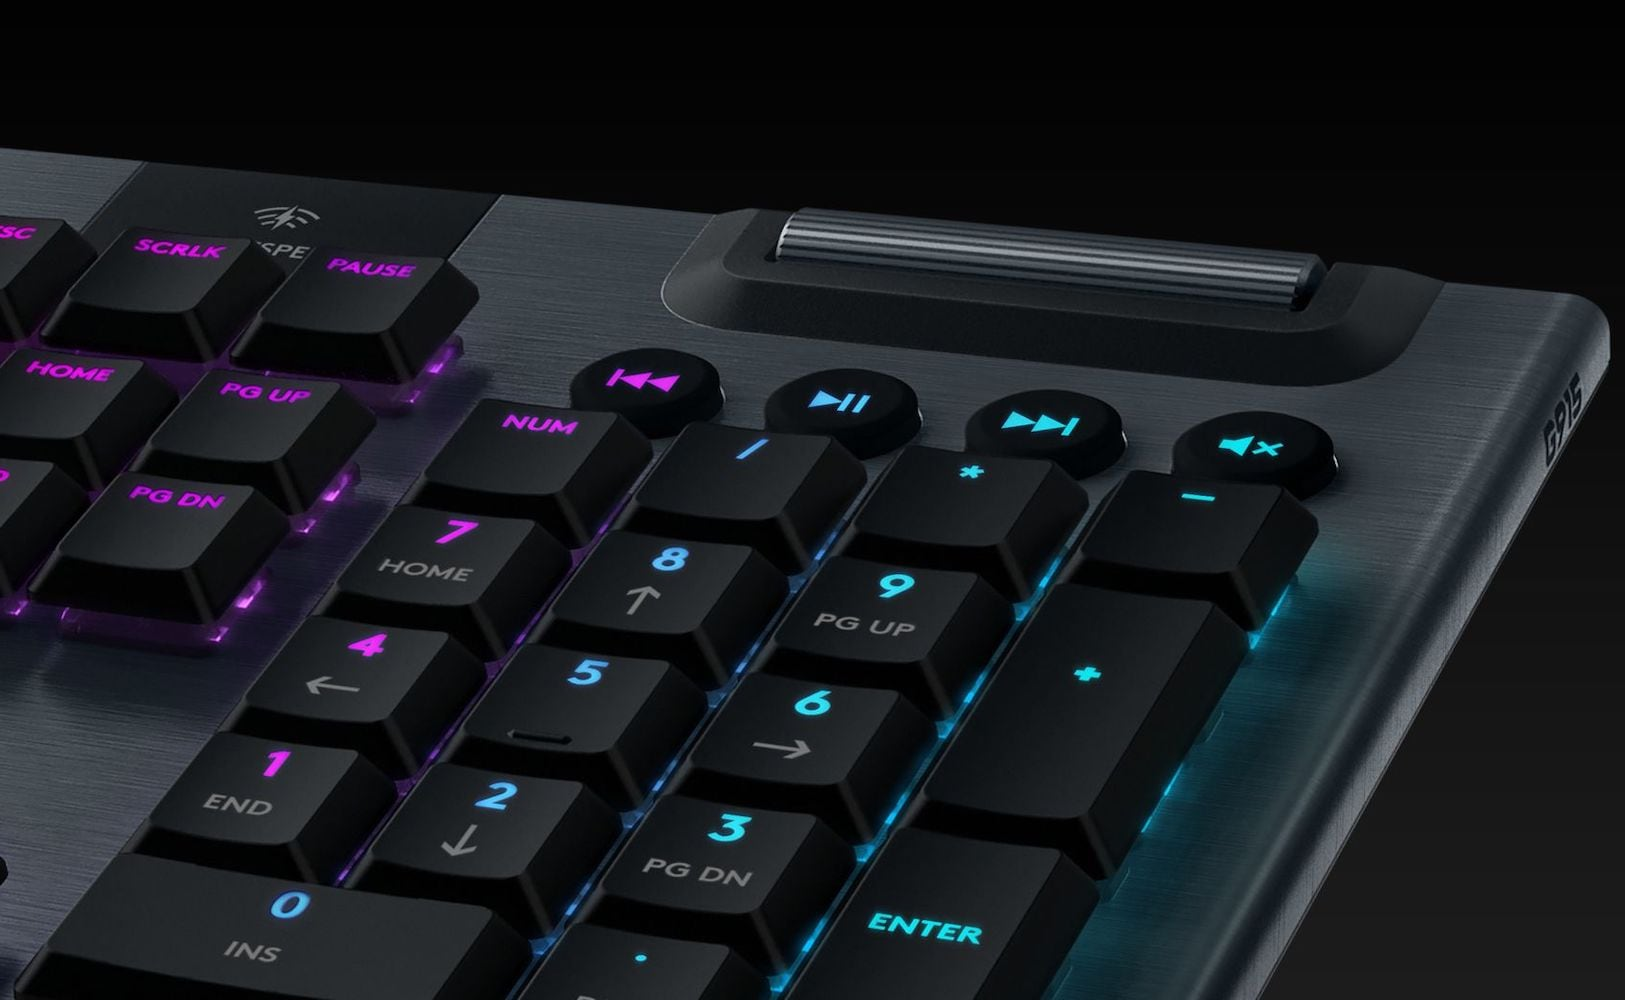 Logitech G915 Wireless Mechanical Gaming Keyboard lets you game for 30 hours on one charge